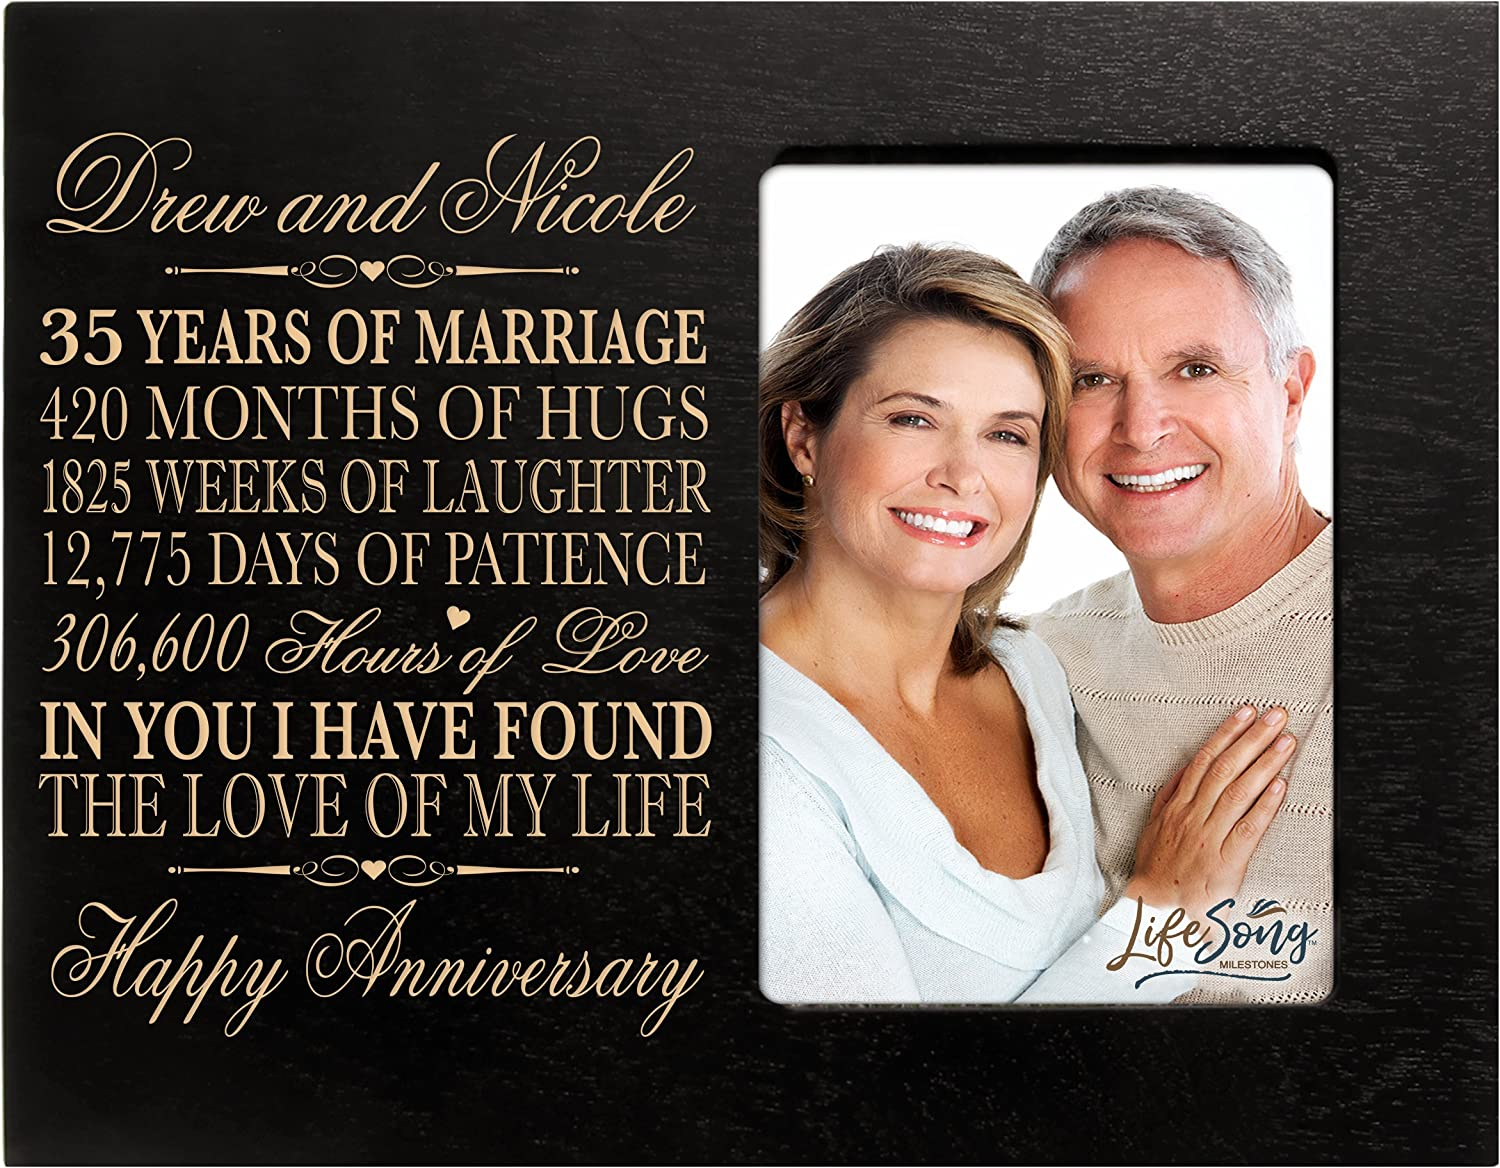 Amazon Com Lifesong Milestones Personalized 35th Year Wedding Anniversary Picture Frame Gift For Couple 35th For Her 35th Wedding For Him Photo Frame Holds 1 4x6 Photo 8 H X 10 W Black